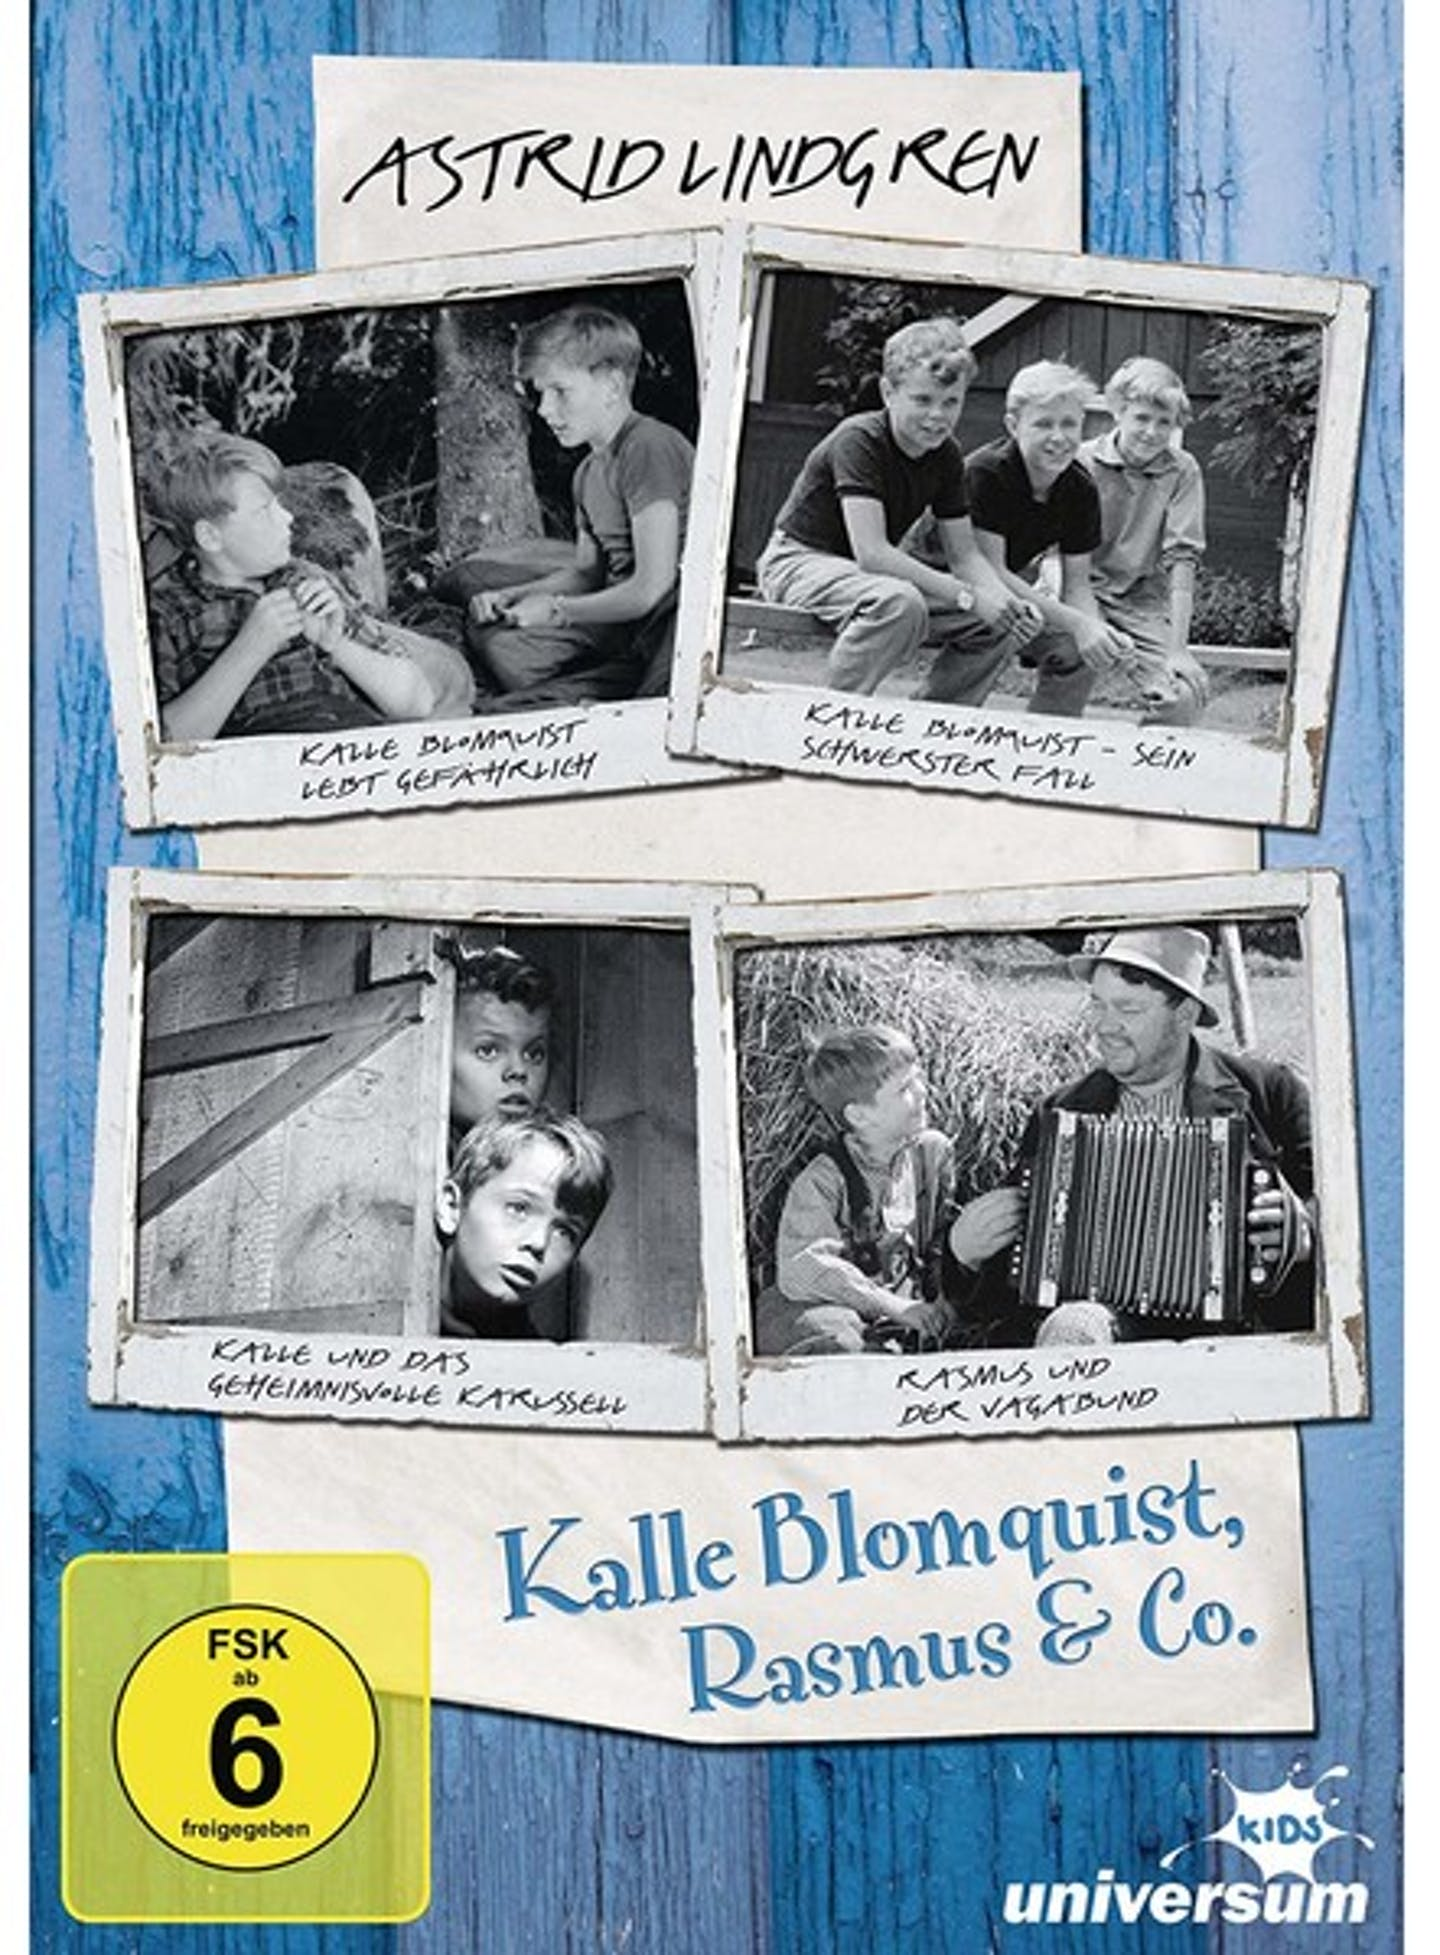 Film Kalle Blomquist, Rasmus & Co